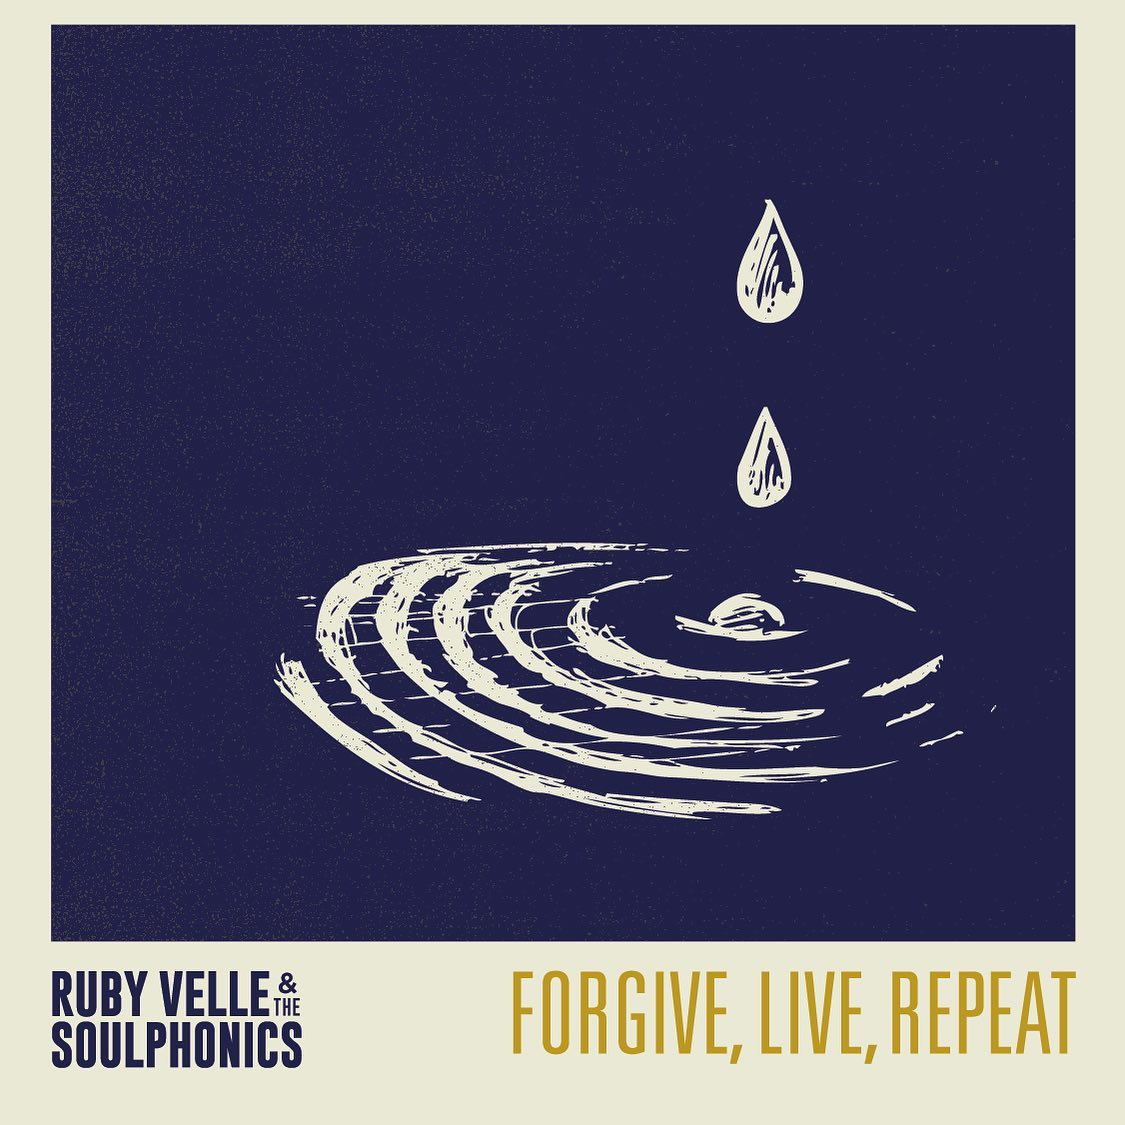 SoulTracks Premieres RV&S 'Forgive, Live, Repeat' - July 10, 2019